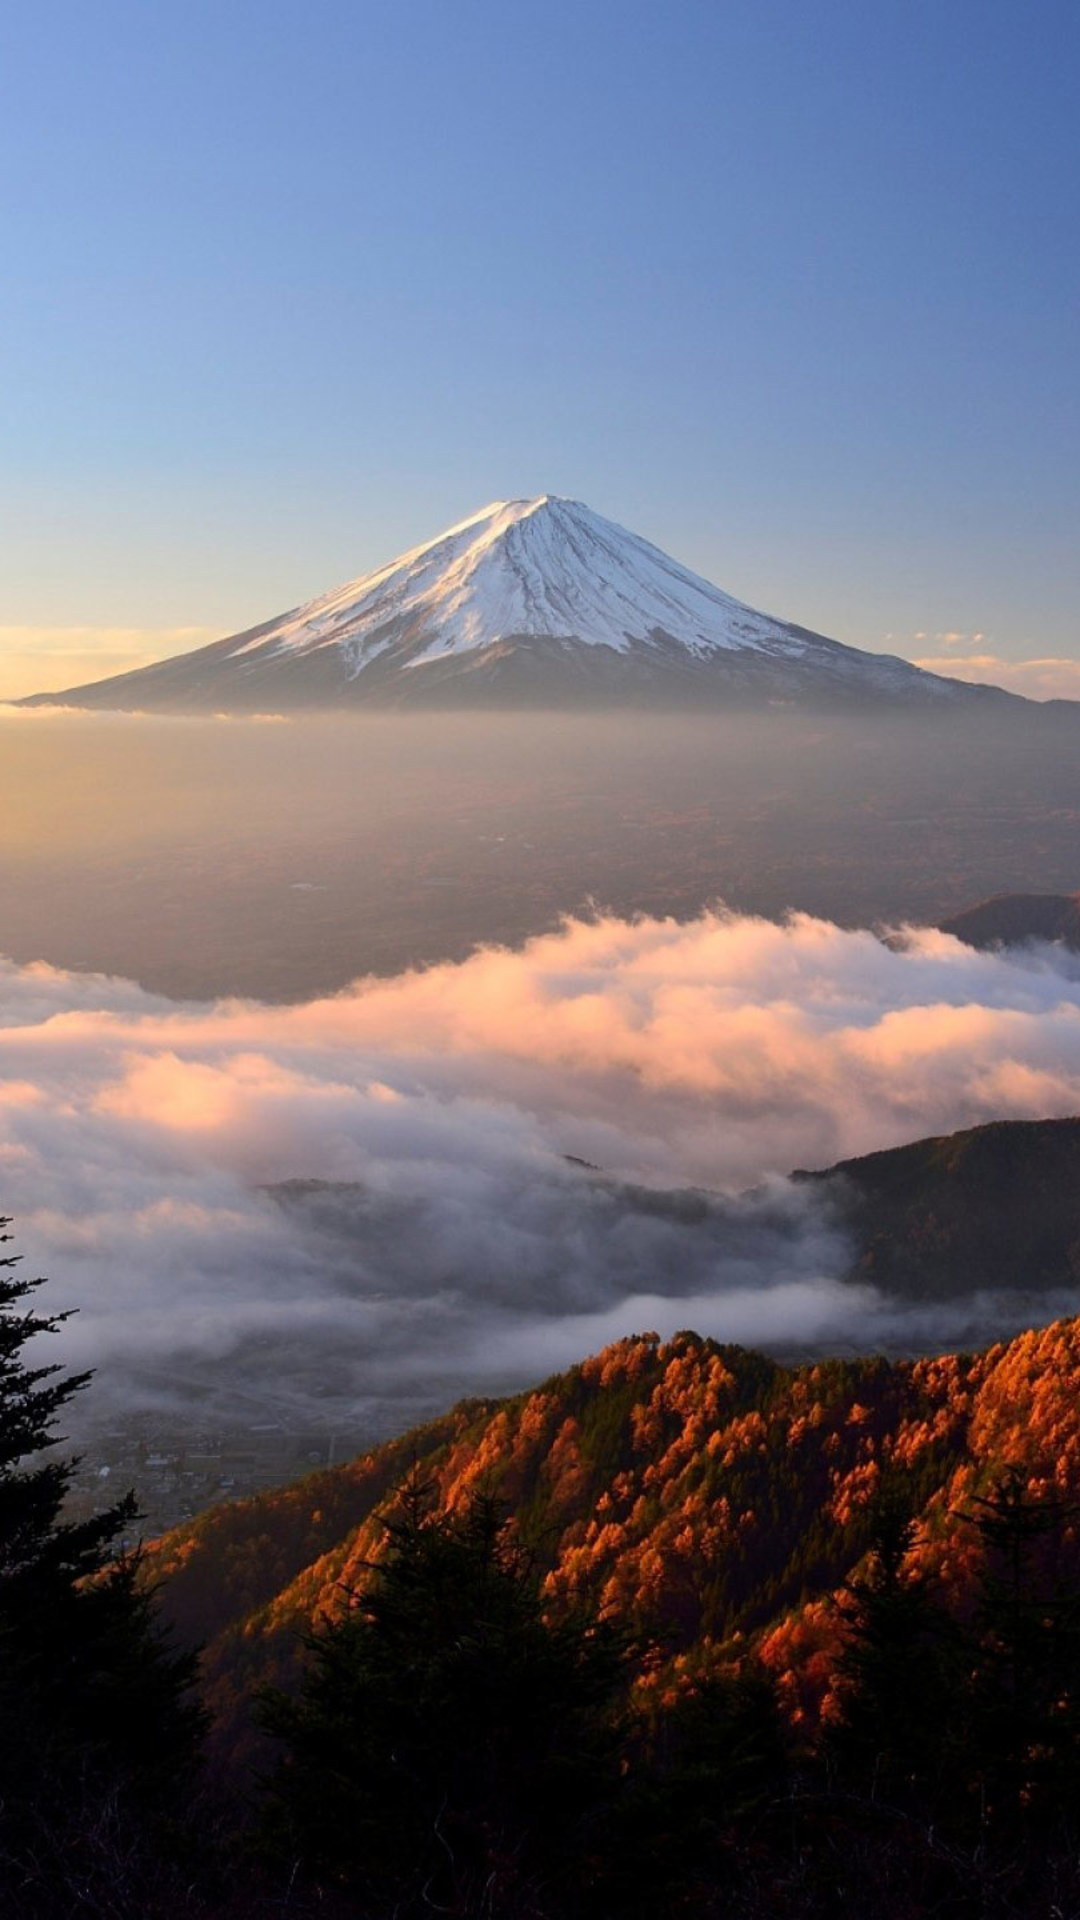 Mount Fuji Hd Qhd Wallpaper